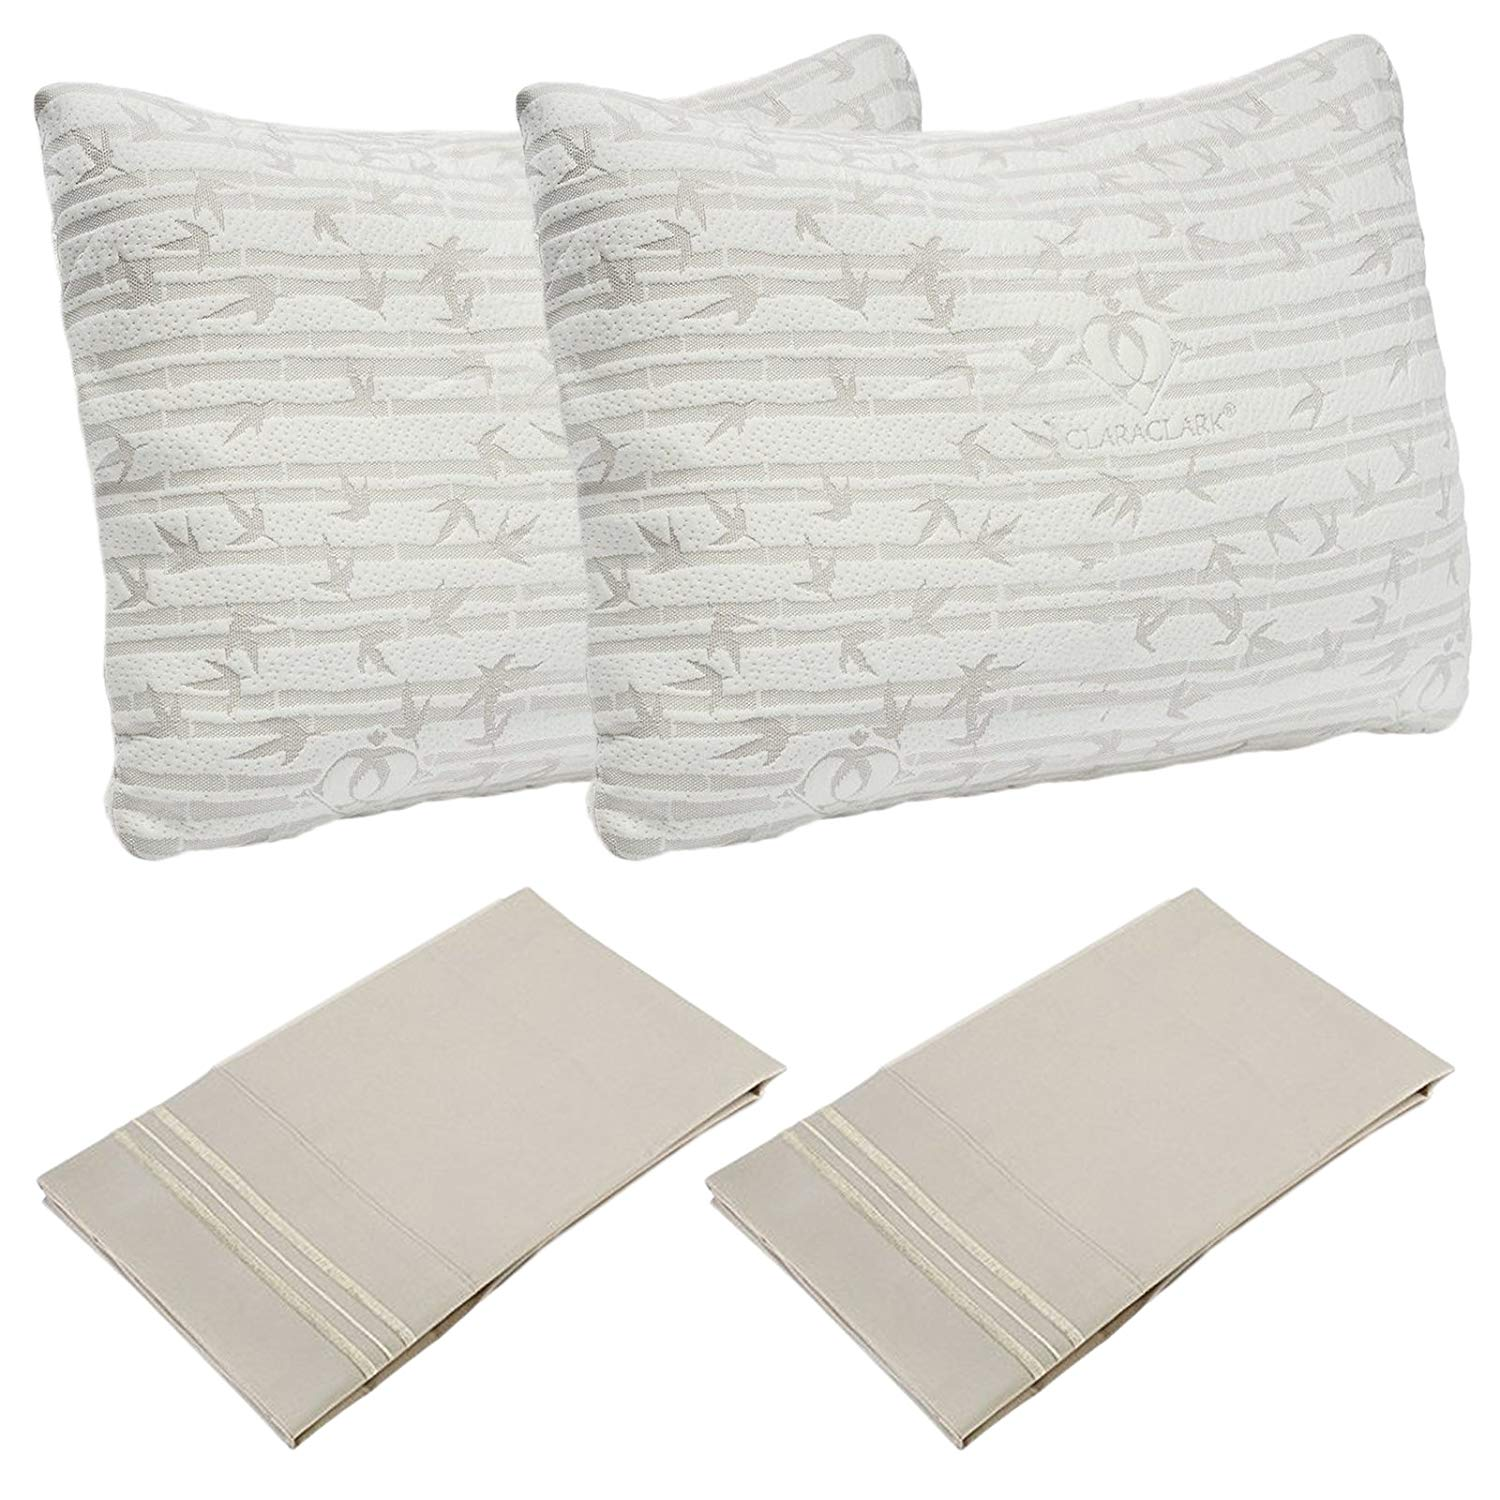 Set of 2 Premium Soft Bamboo Rayon Shredded Memory Foam Pillow, With 2 Bonus Cream Pillowcases - Hypoallergenic Comfort Pillow, Breathable Comfortable Supportive Design, Enhance Your Sleep, Queen Size